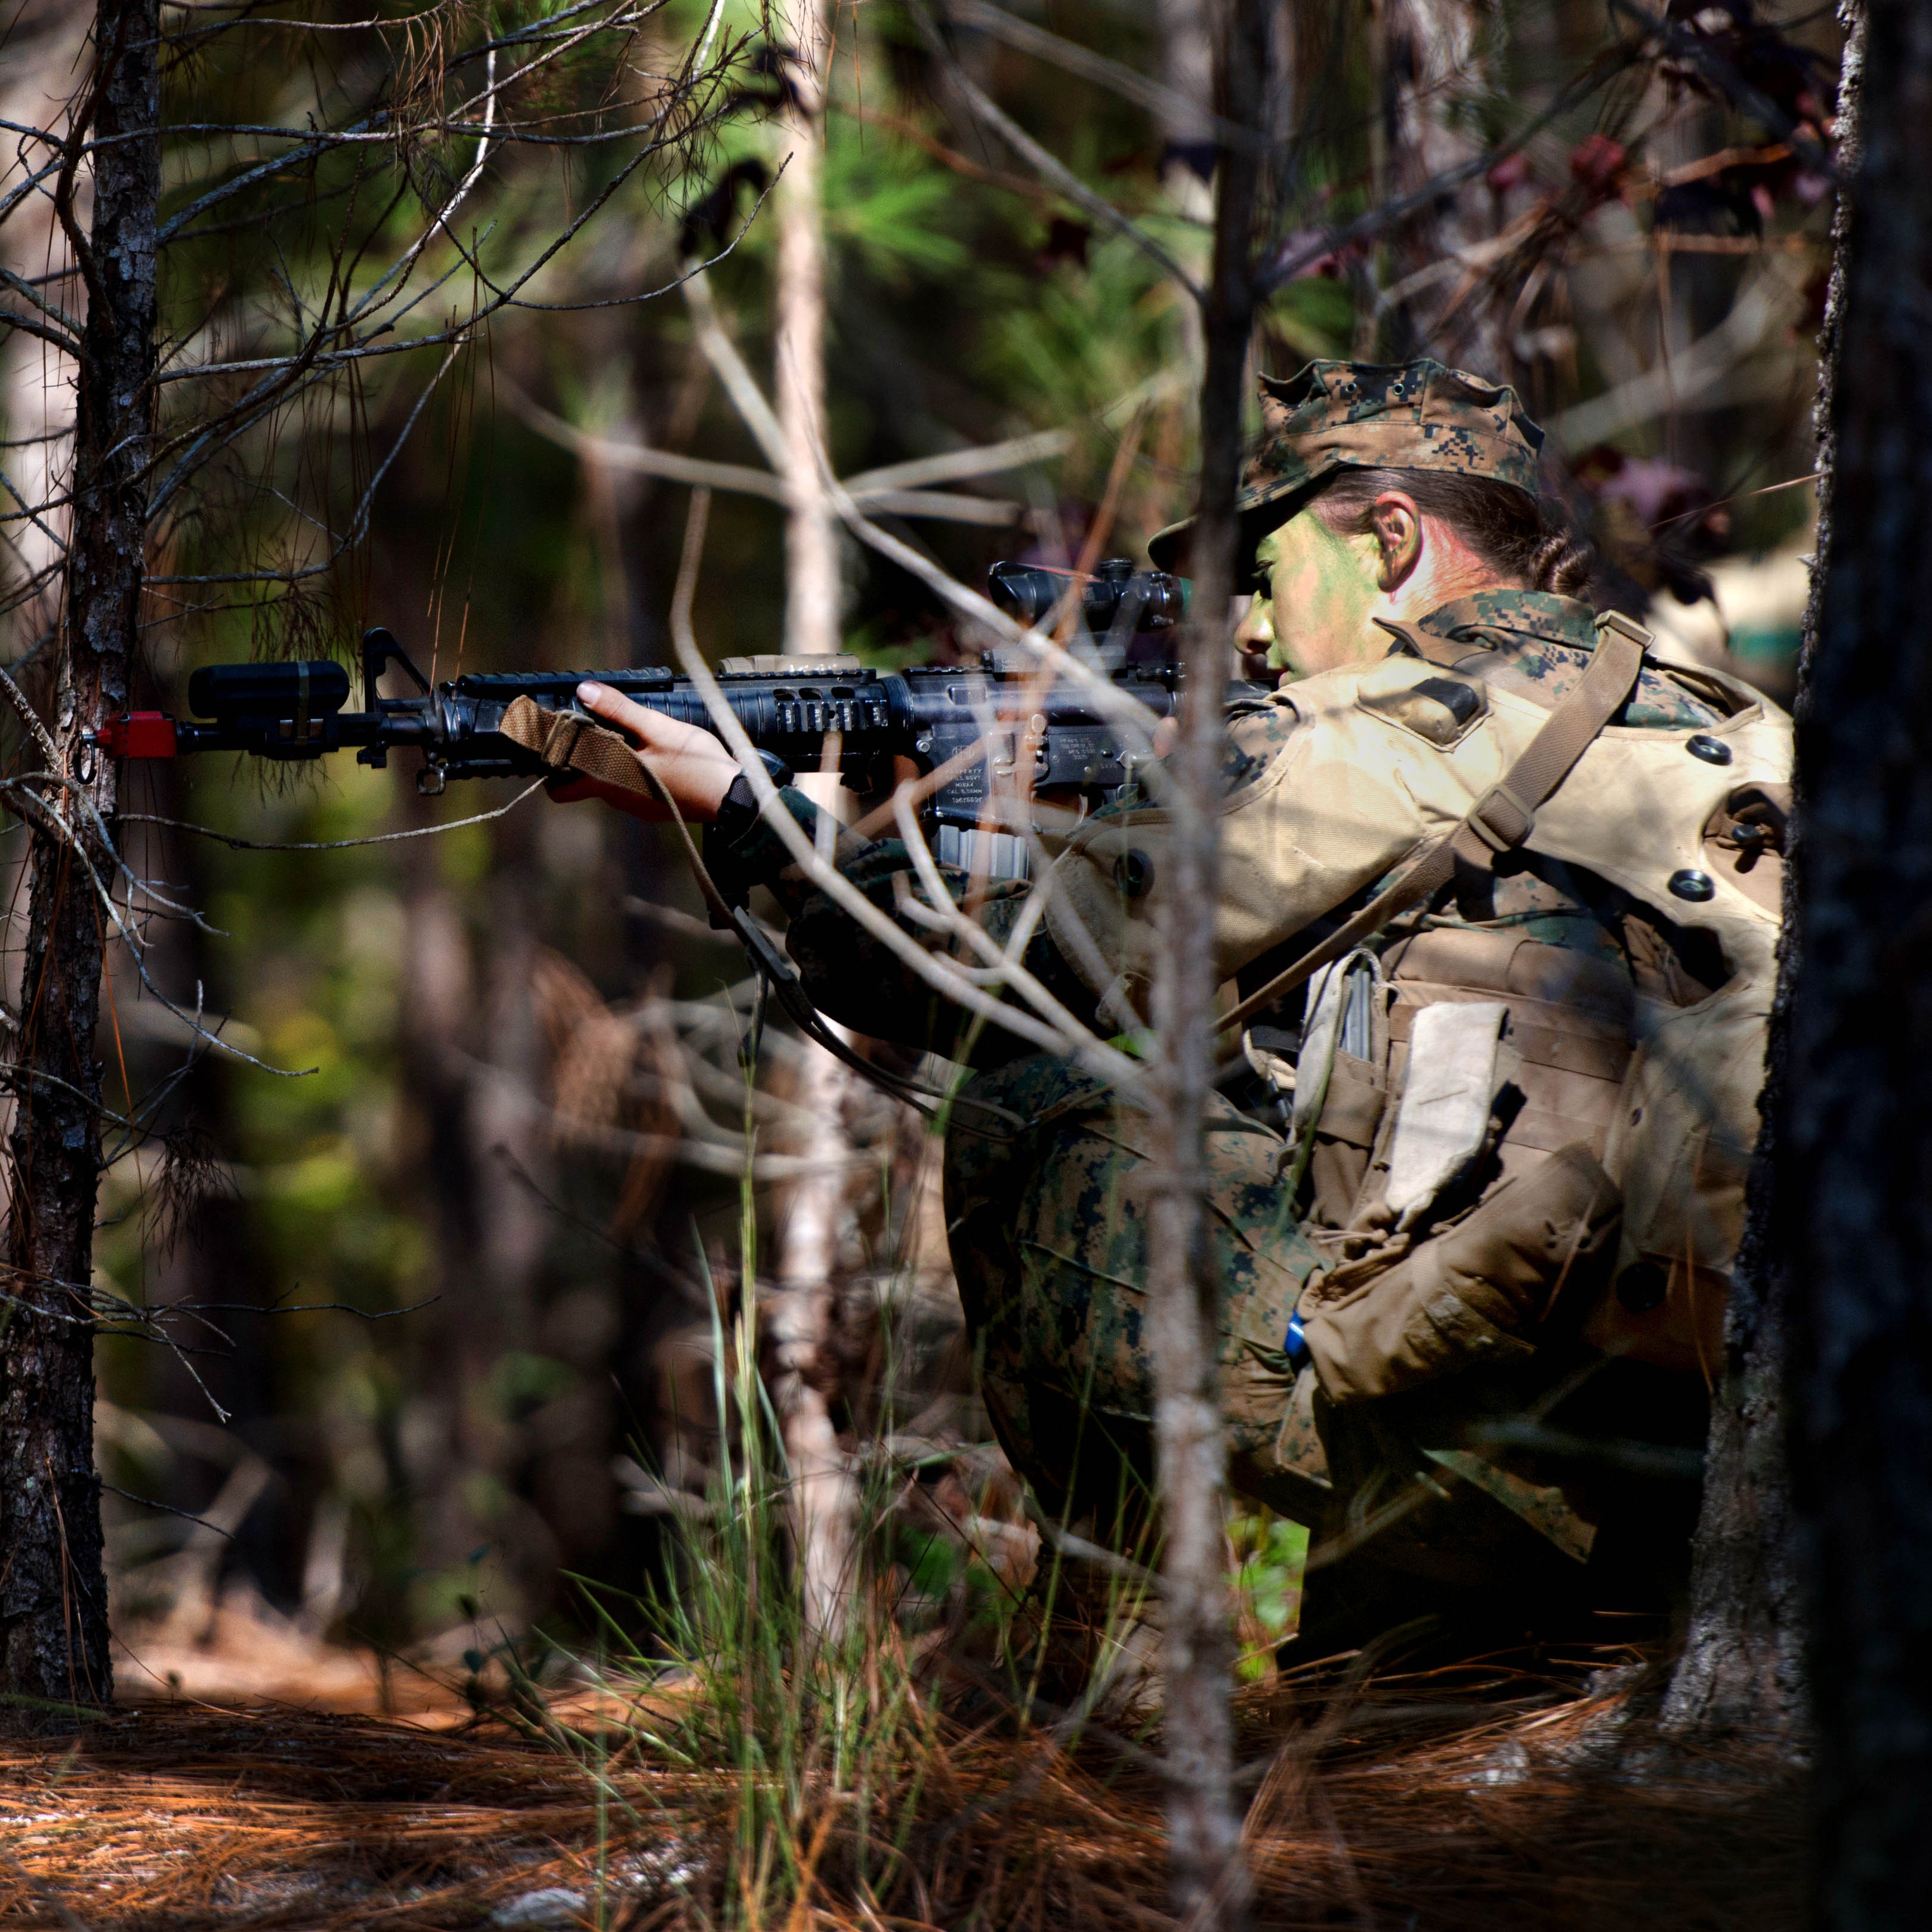 Delta Company is the first infantry training company to fully integrate female Marines into an entire training cycle.